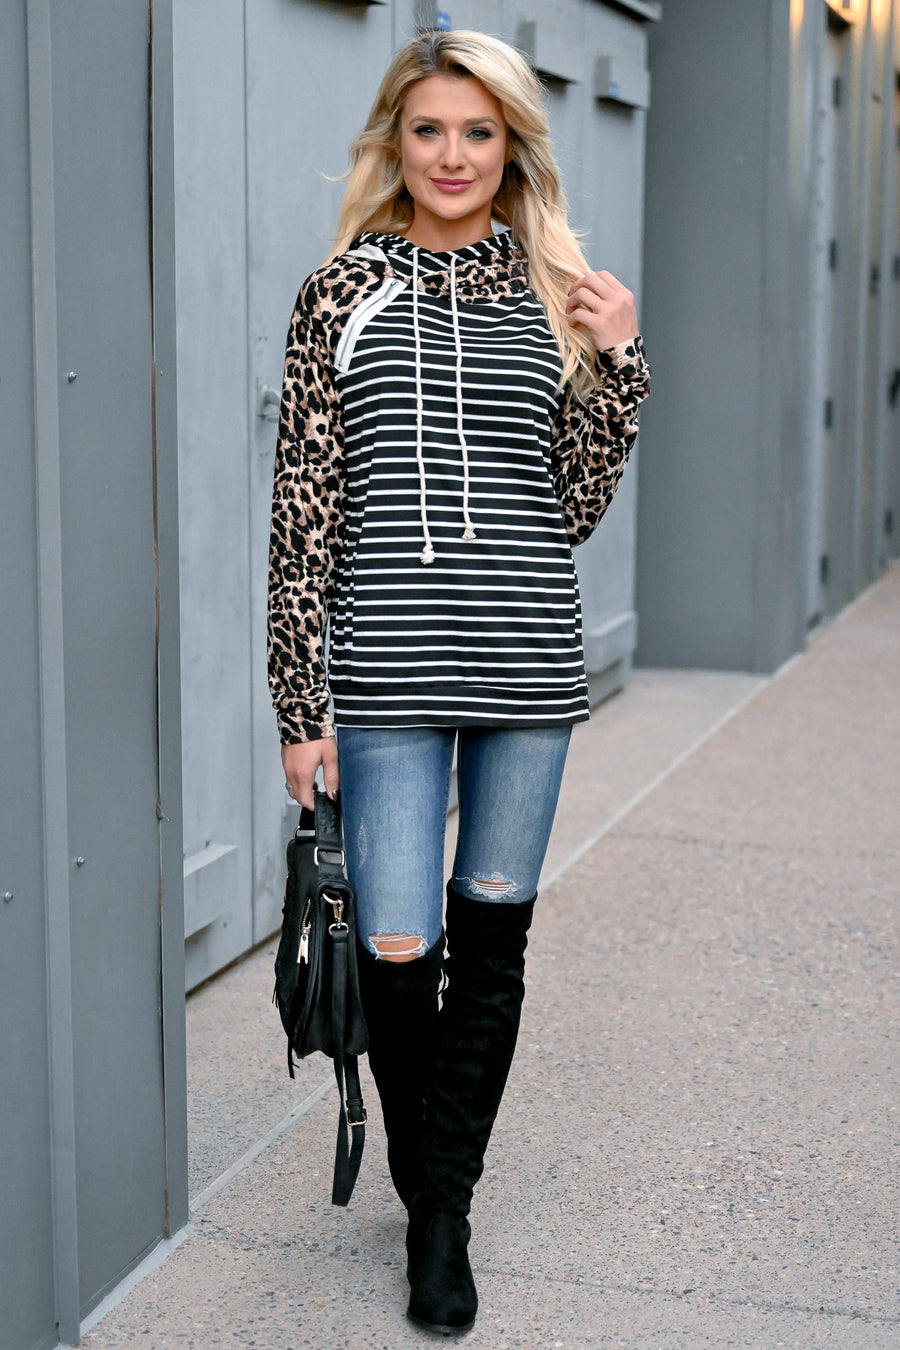 This Is So You Double Hoodie - Leopard & Stripes womens trendy long sleeve double hood pullover long sleeve closet candy front